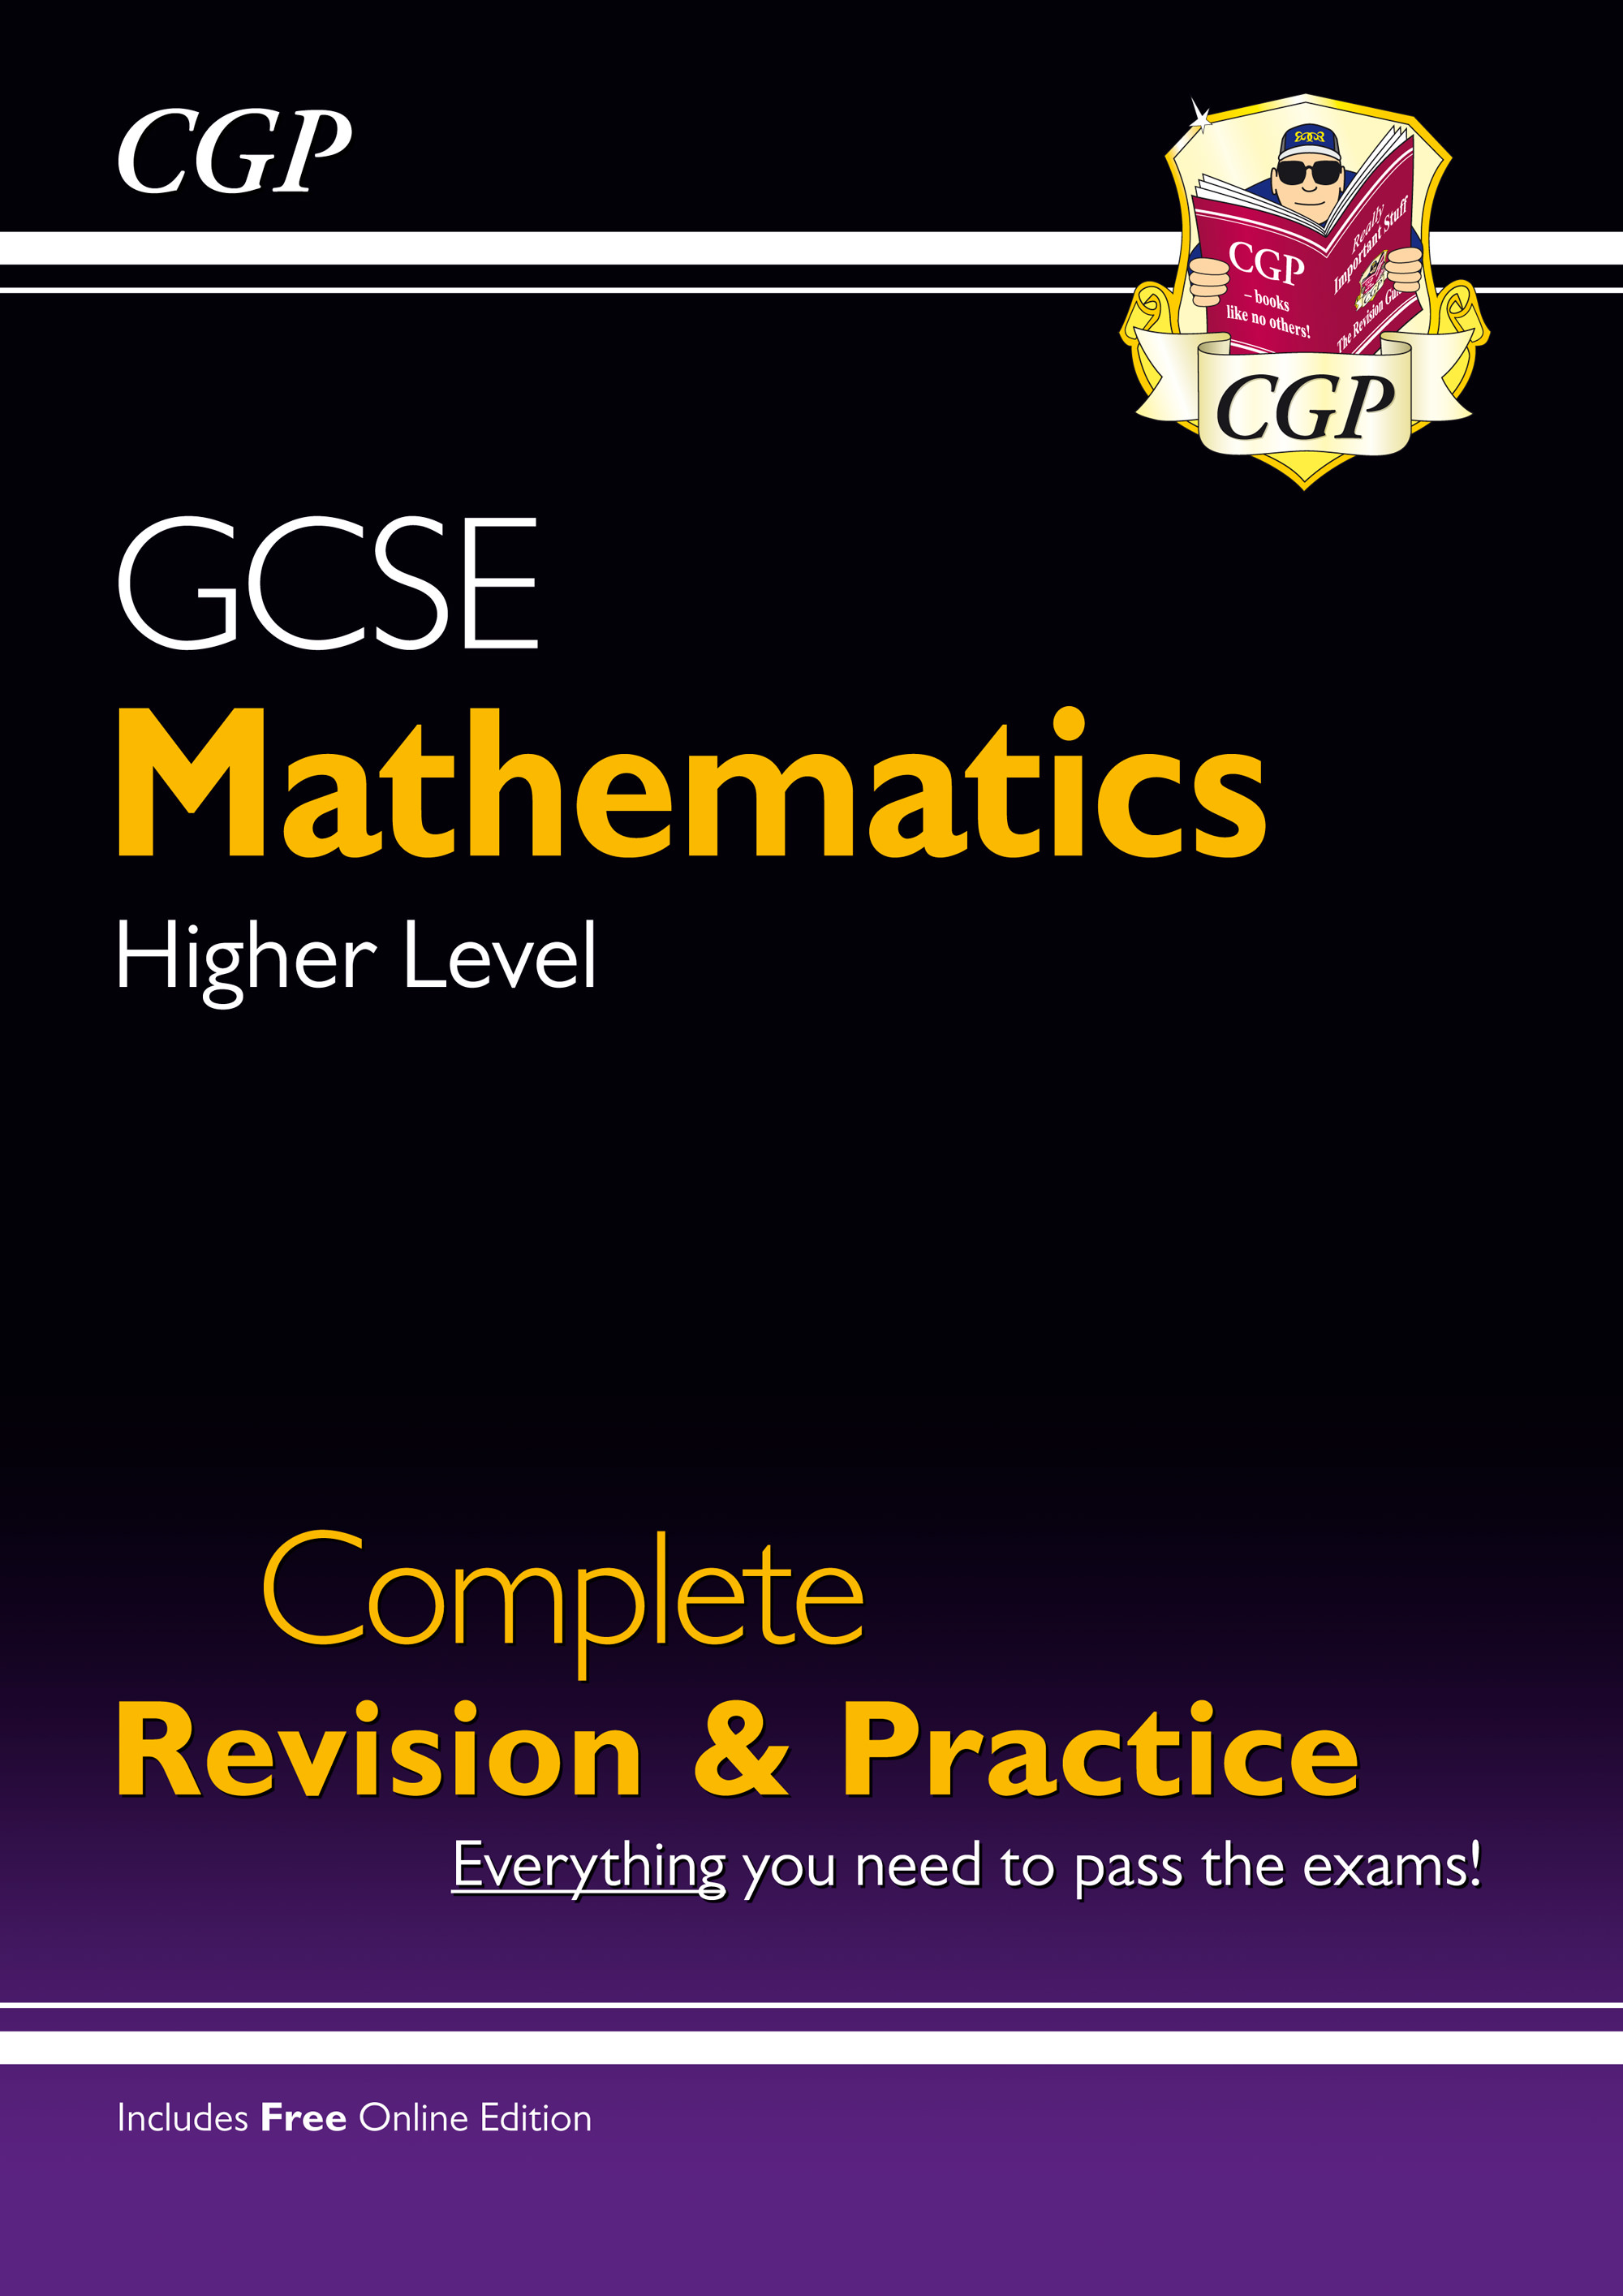 MHS47 - GCSE Maths Complete Revision & Practice: Higher - Grade 9-1 Course (with Online Edition)